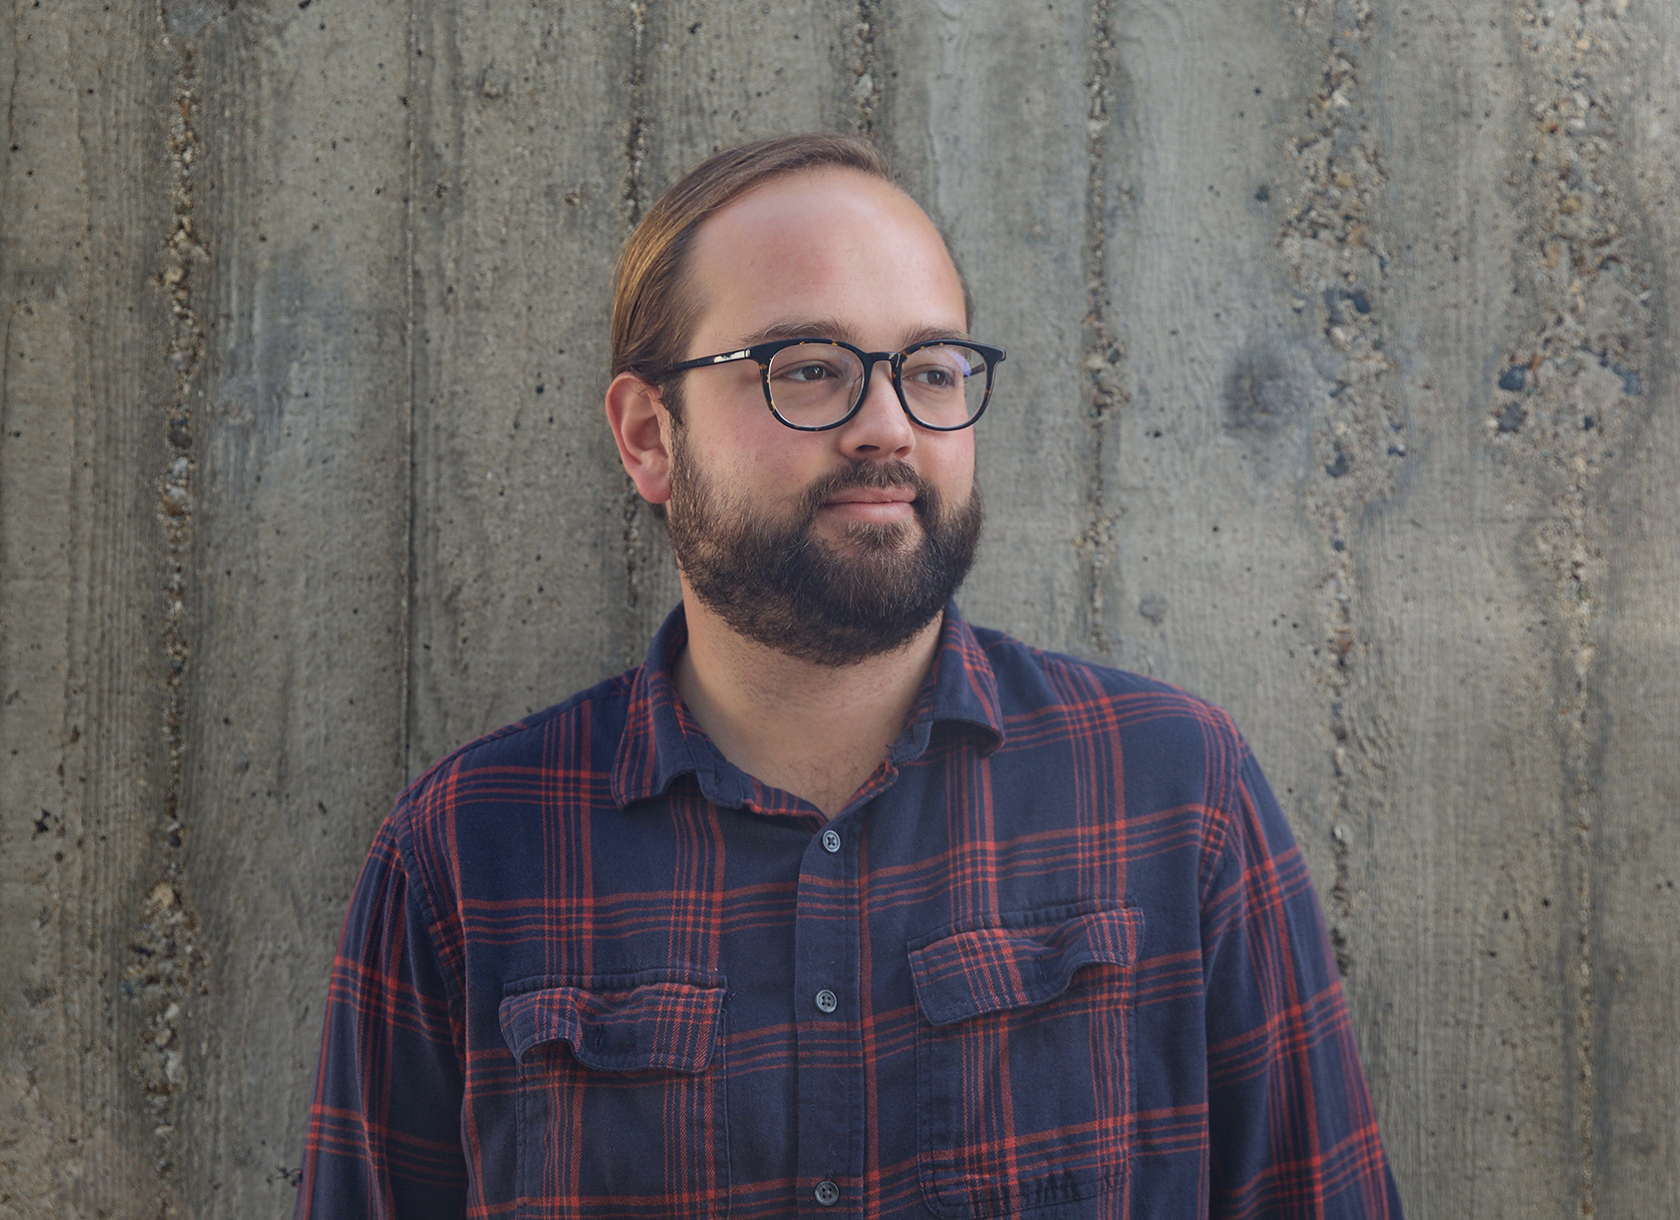 Bearded white man wearing plaid shirt and glasses looks to the right